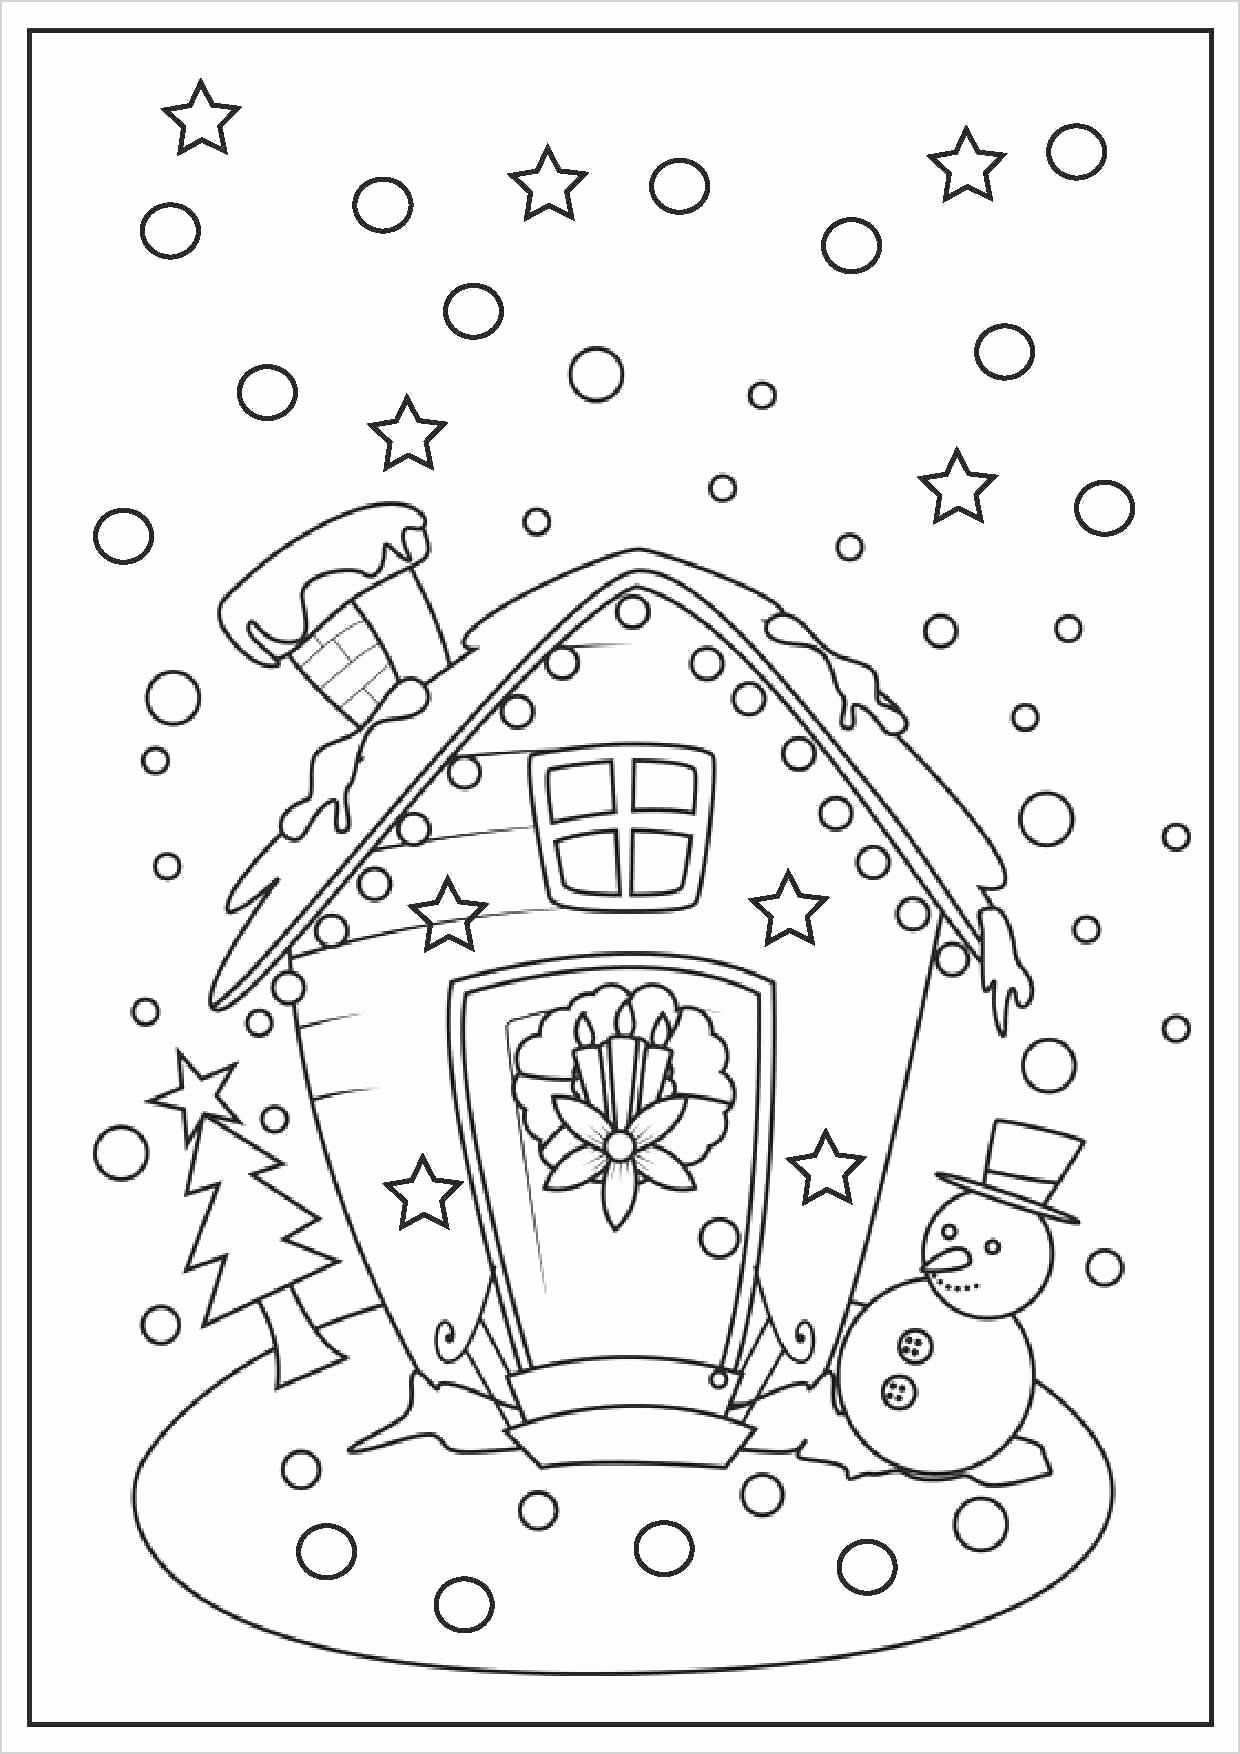 Rhode Island Flag Coloring Page Fresh Pennsylvania Flag Coloring